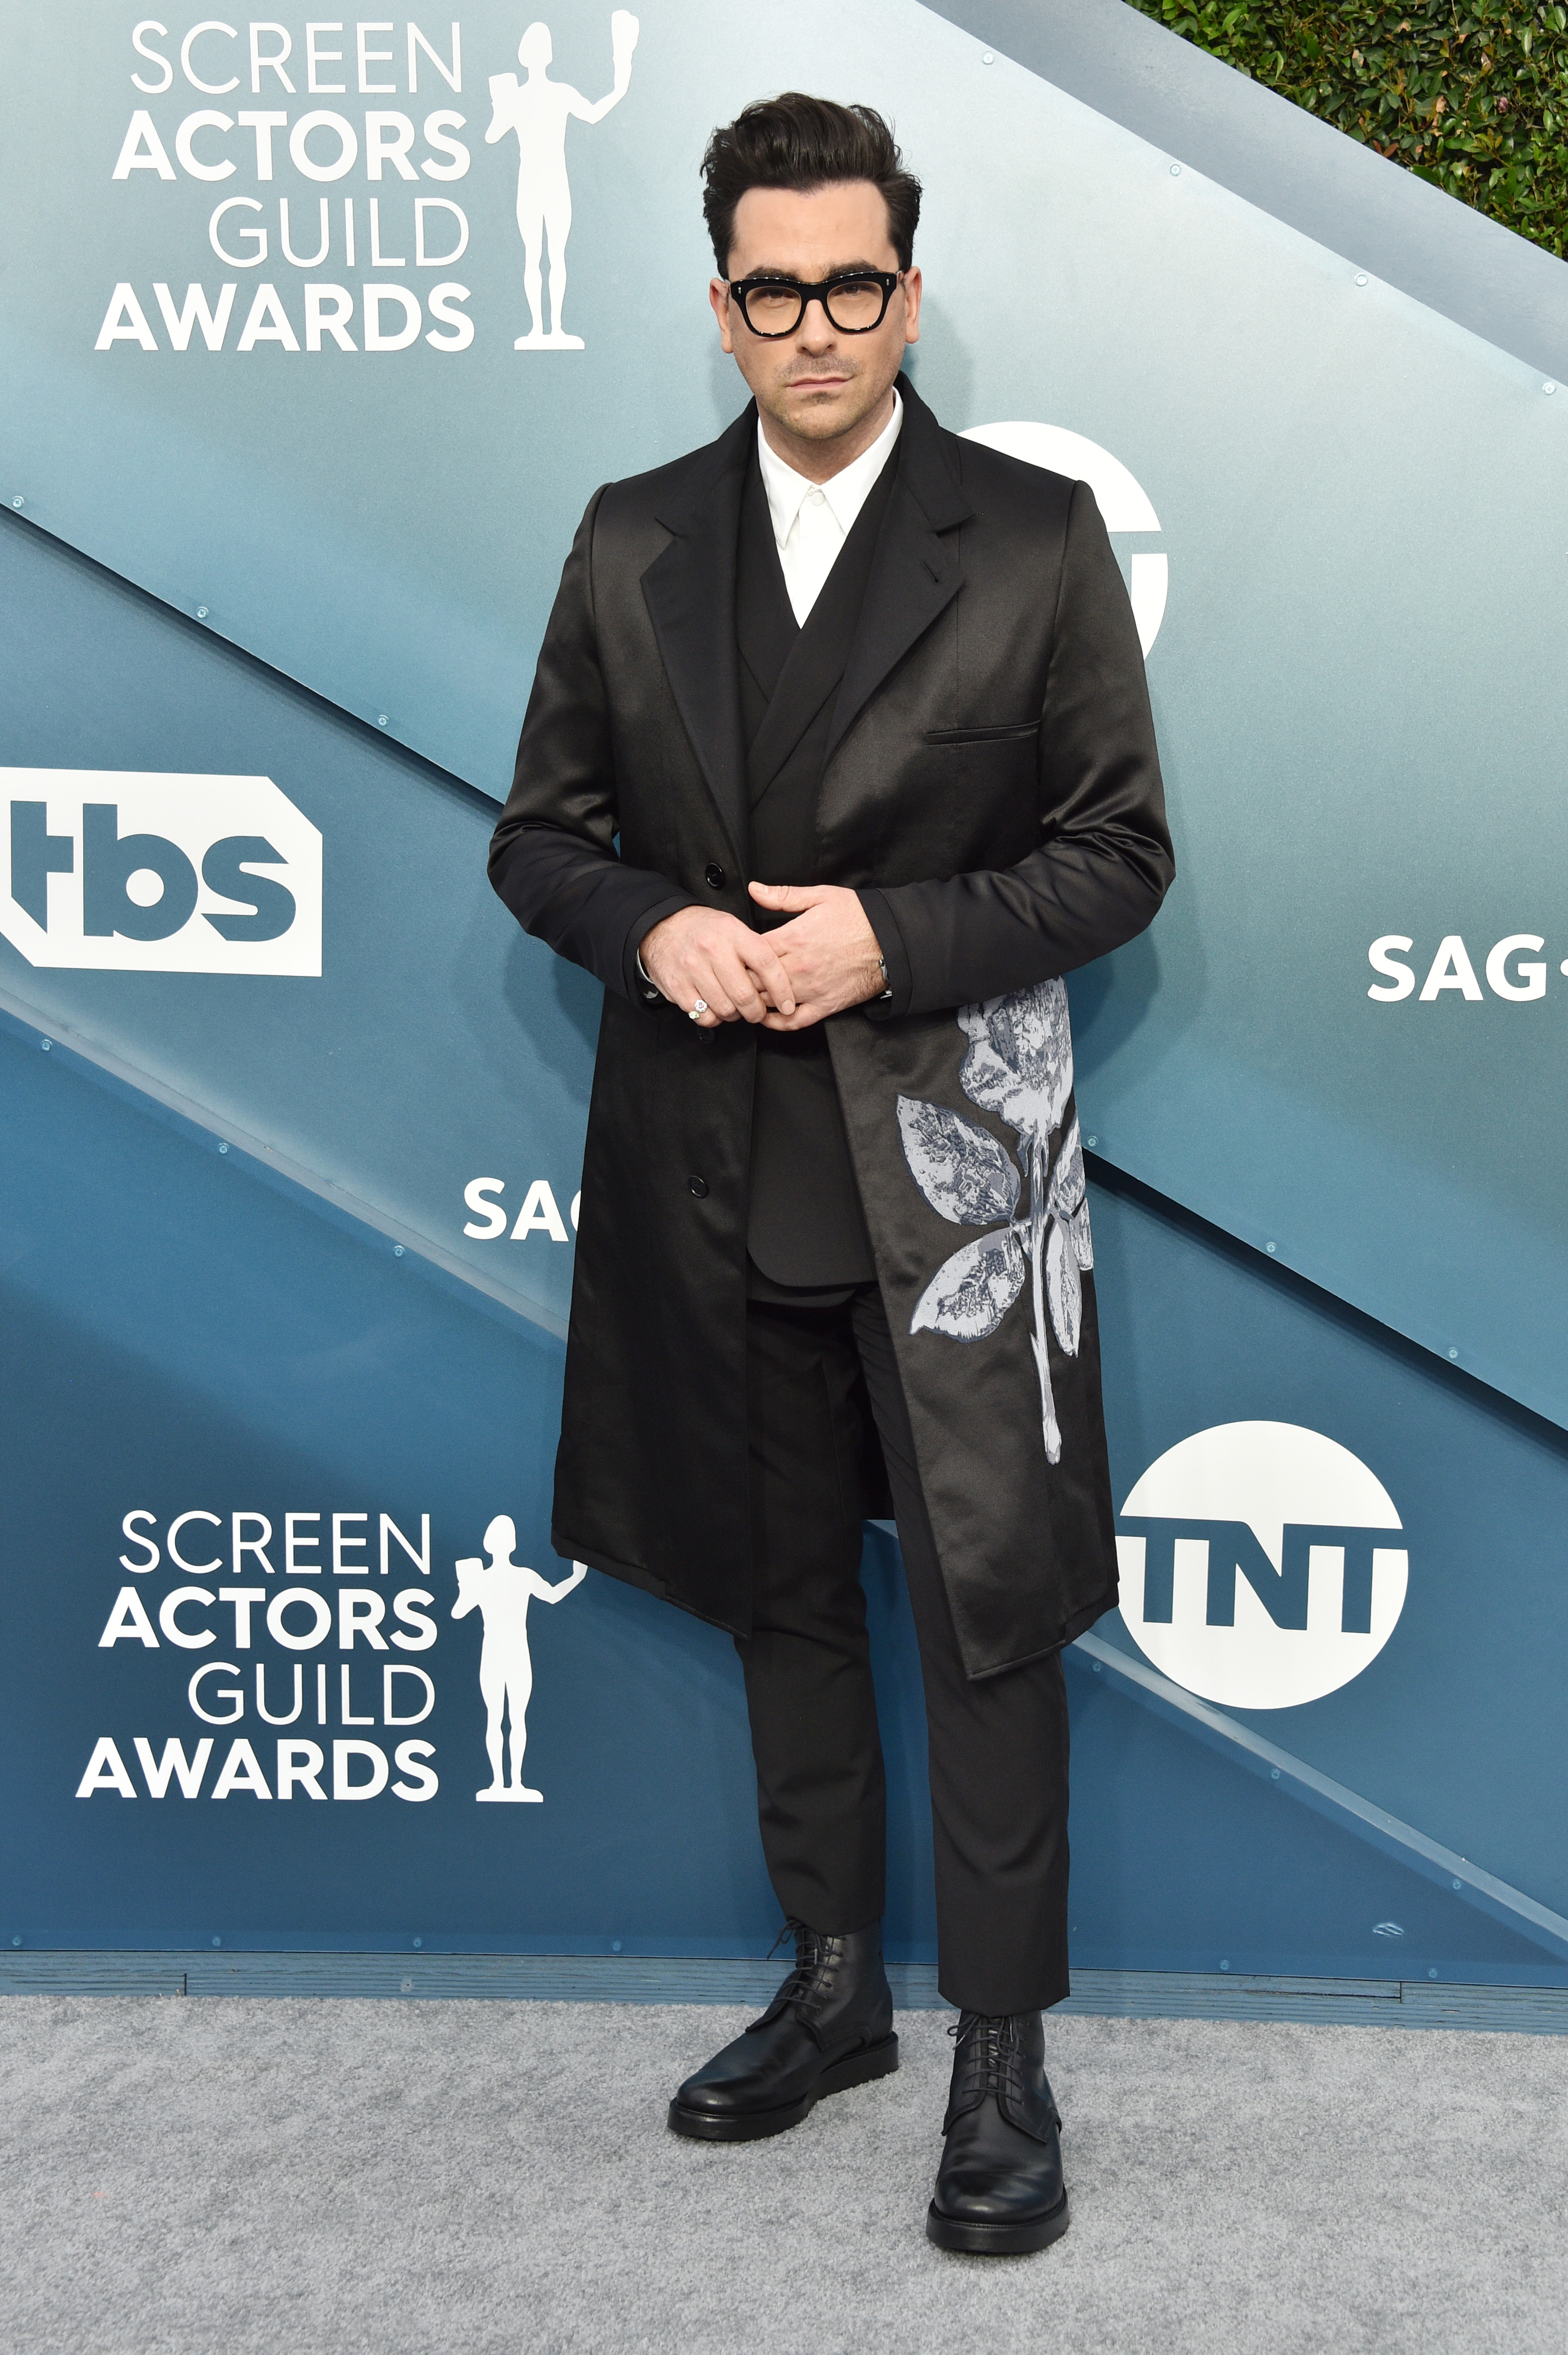 LOS ANGELES, CALIFORNIA - JANUARY 19: Dan Levy attends the 26th Annual Screen ActorsGuild Awards at The Shrine Auditorium on January 19, 2020 in Los Angeles, California. 721430 (Photo by Gregg DeGuire/Getty Images for Turner)